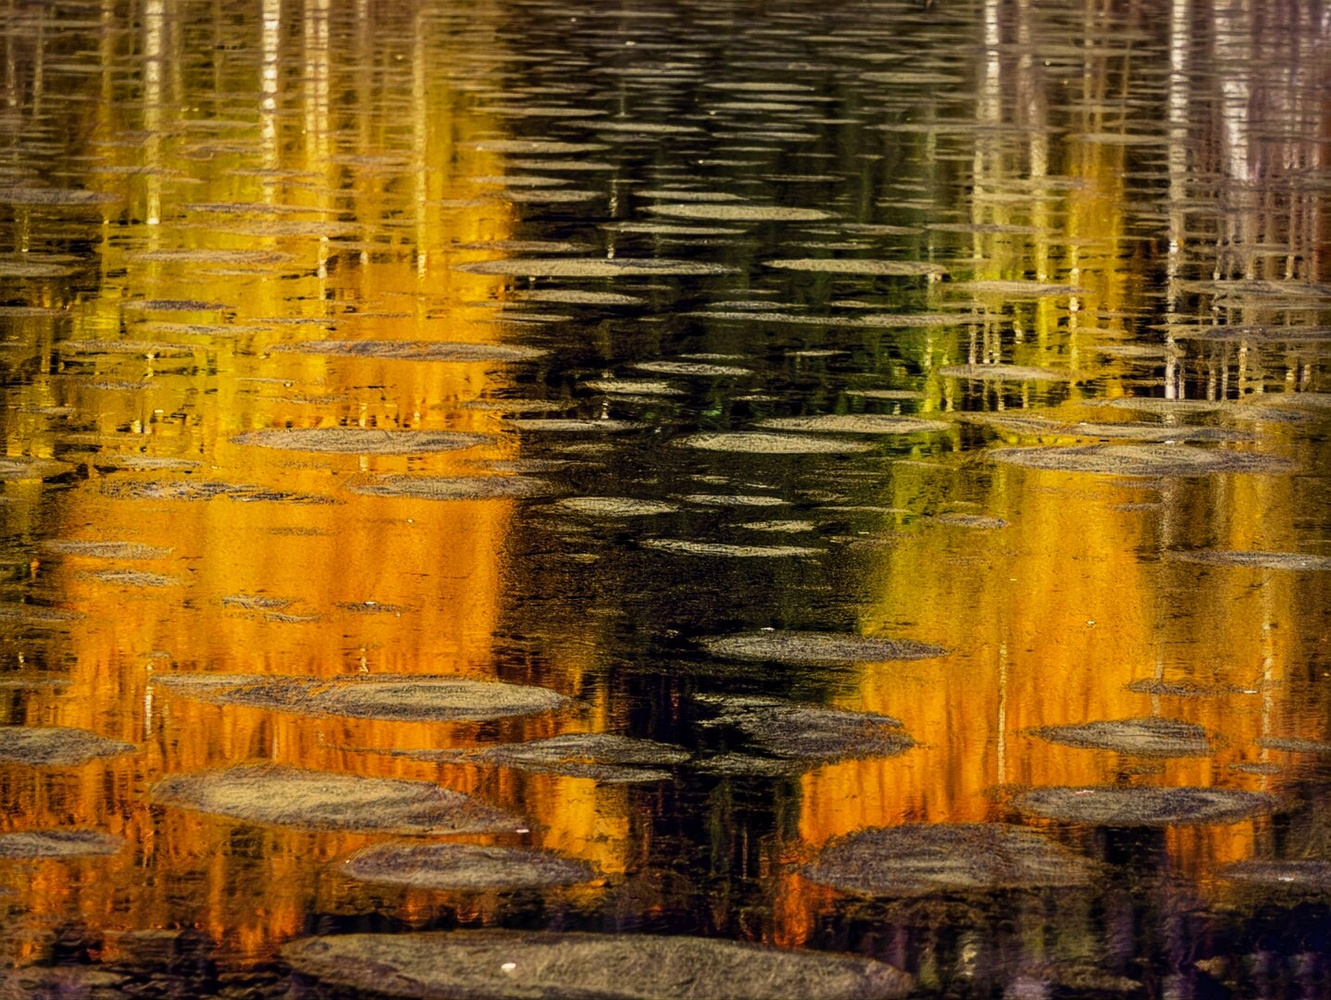 Fall Abstraction by Jamie zartman